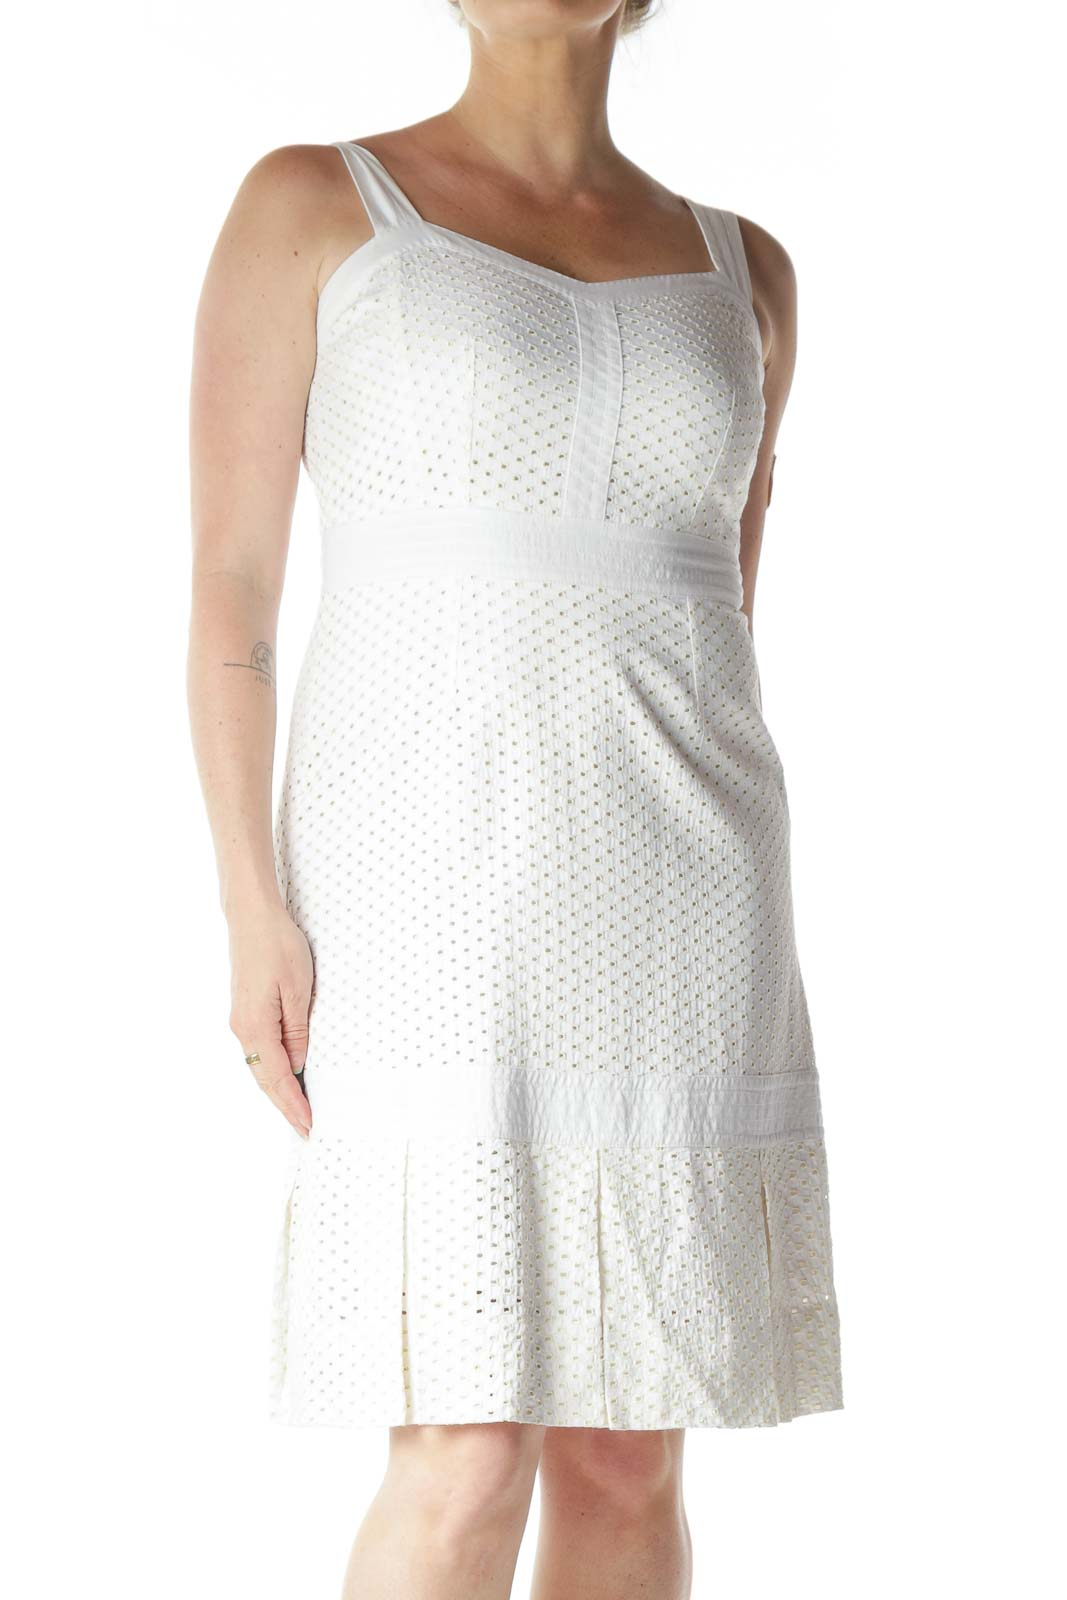 White Eyelet Designer Sundress